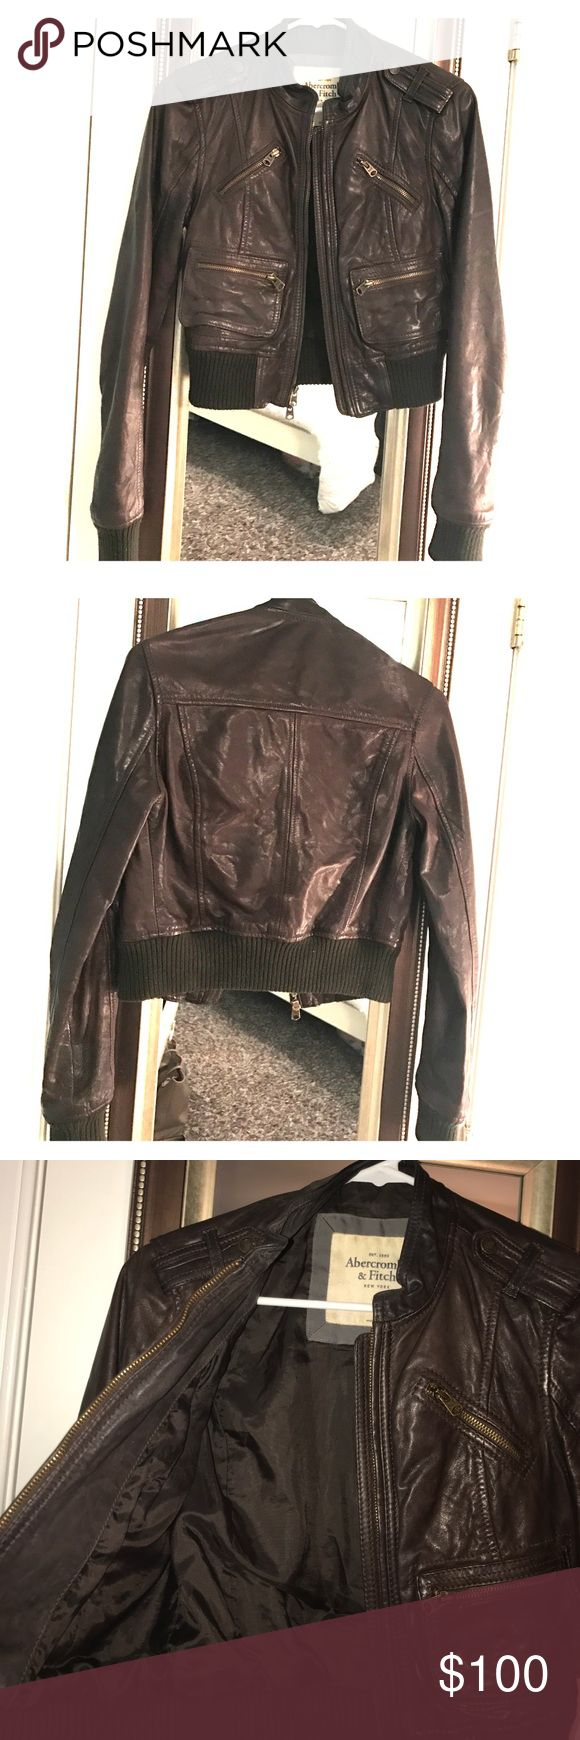 Abercrombie and Fitch brown crop leather jacket Crop brown leather jacket size small by Abercrombie and Fitch ! Perfect cut and super cute, in great condition. Abercrombie & Fitch Jackets & Coats